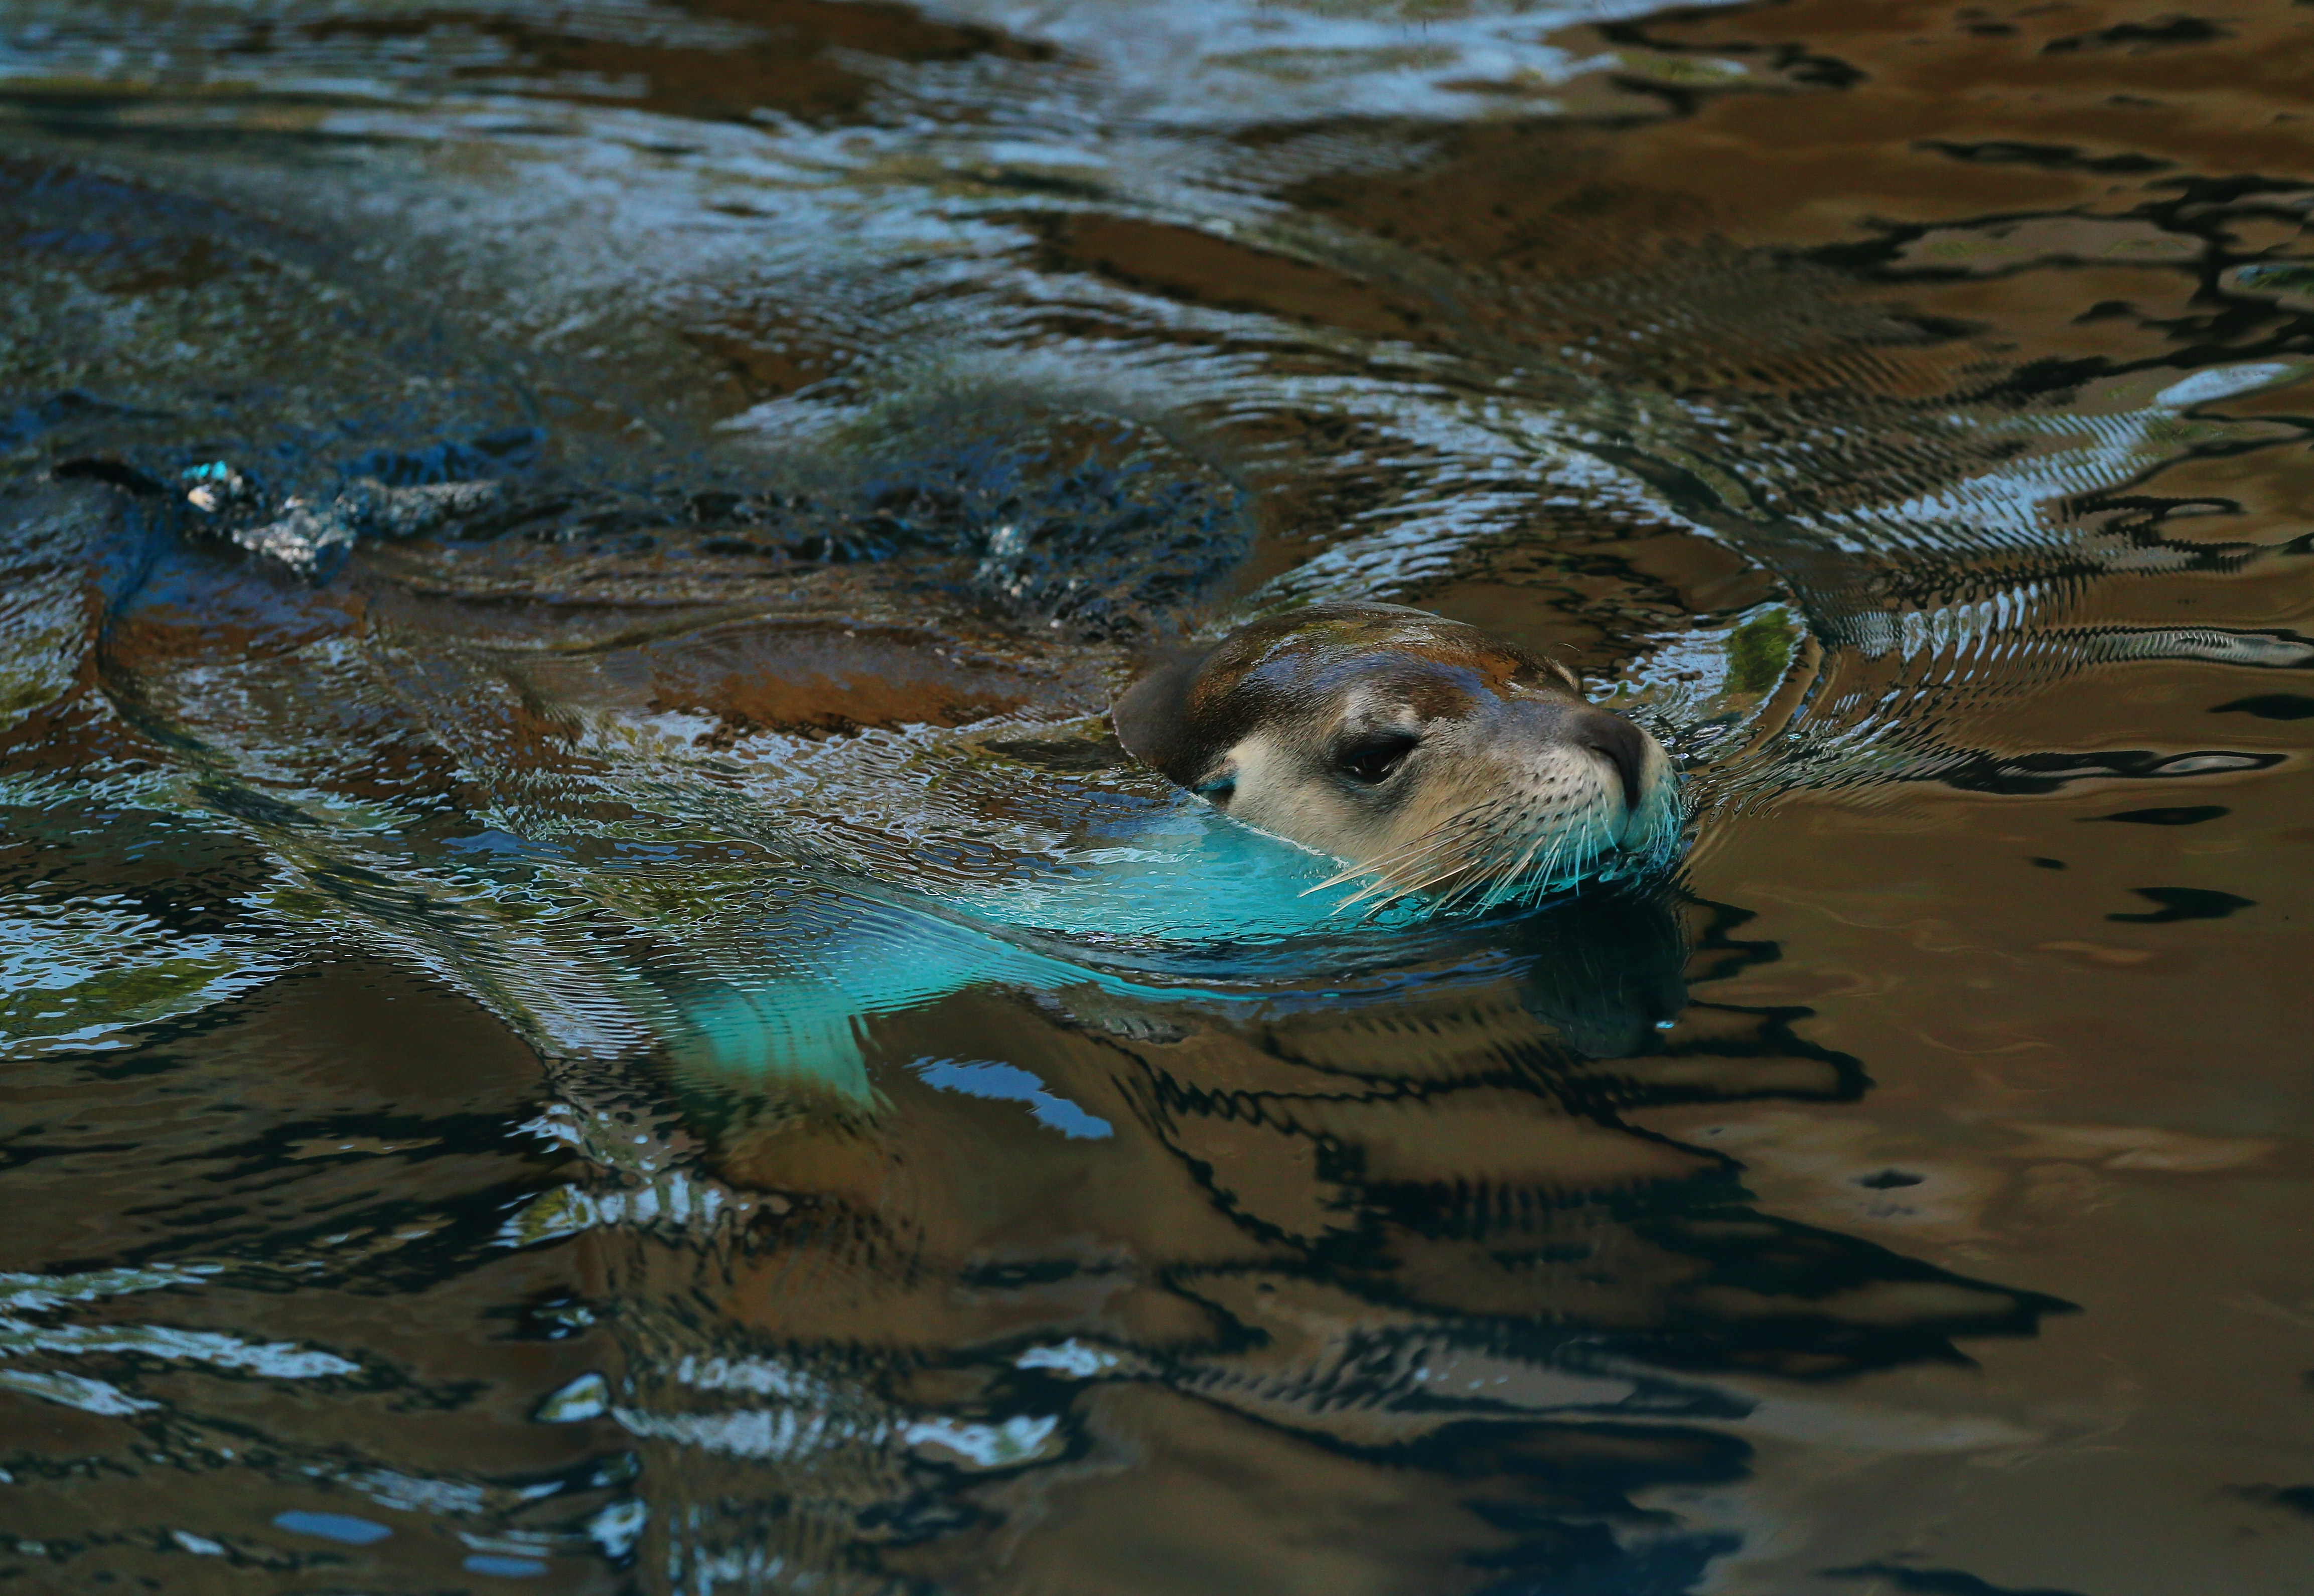 SYDNEY, AUSTRALIA - DECEMBER 21:  A sea lion emerges from under the water whilst swimming at Taronga Zoo on December 21, 2016 in Sydney, Australia. Taronga's resident Meerkats, Lemurs and Sea Lions were given special Christmas-themed enrichment treats, designed to encourage their natural skills.  (Photo by Don Arnold/WireImage)